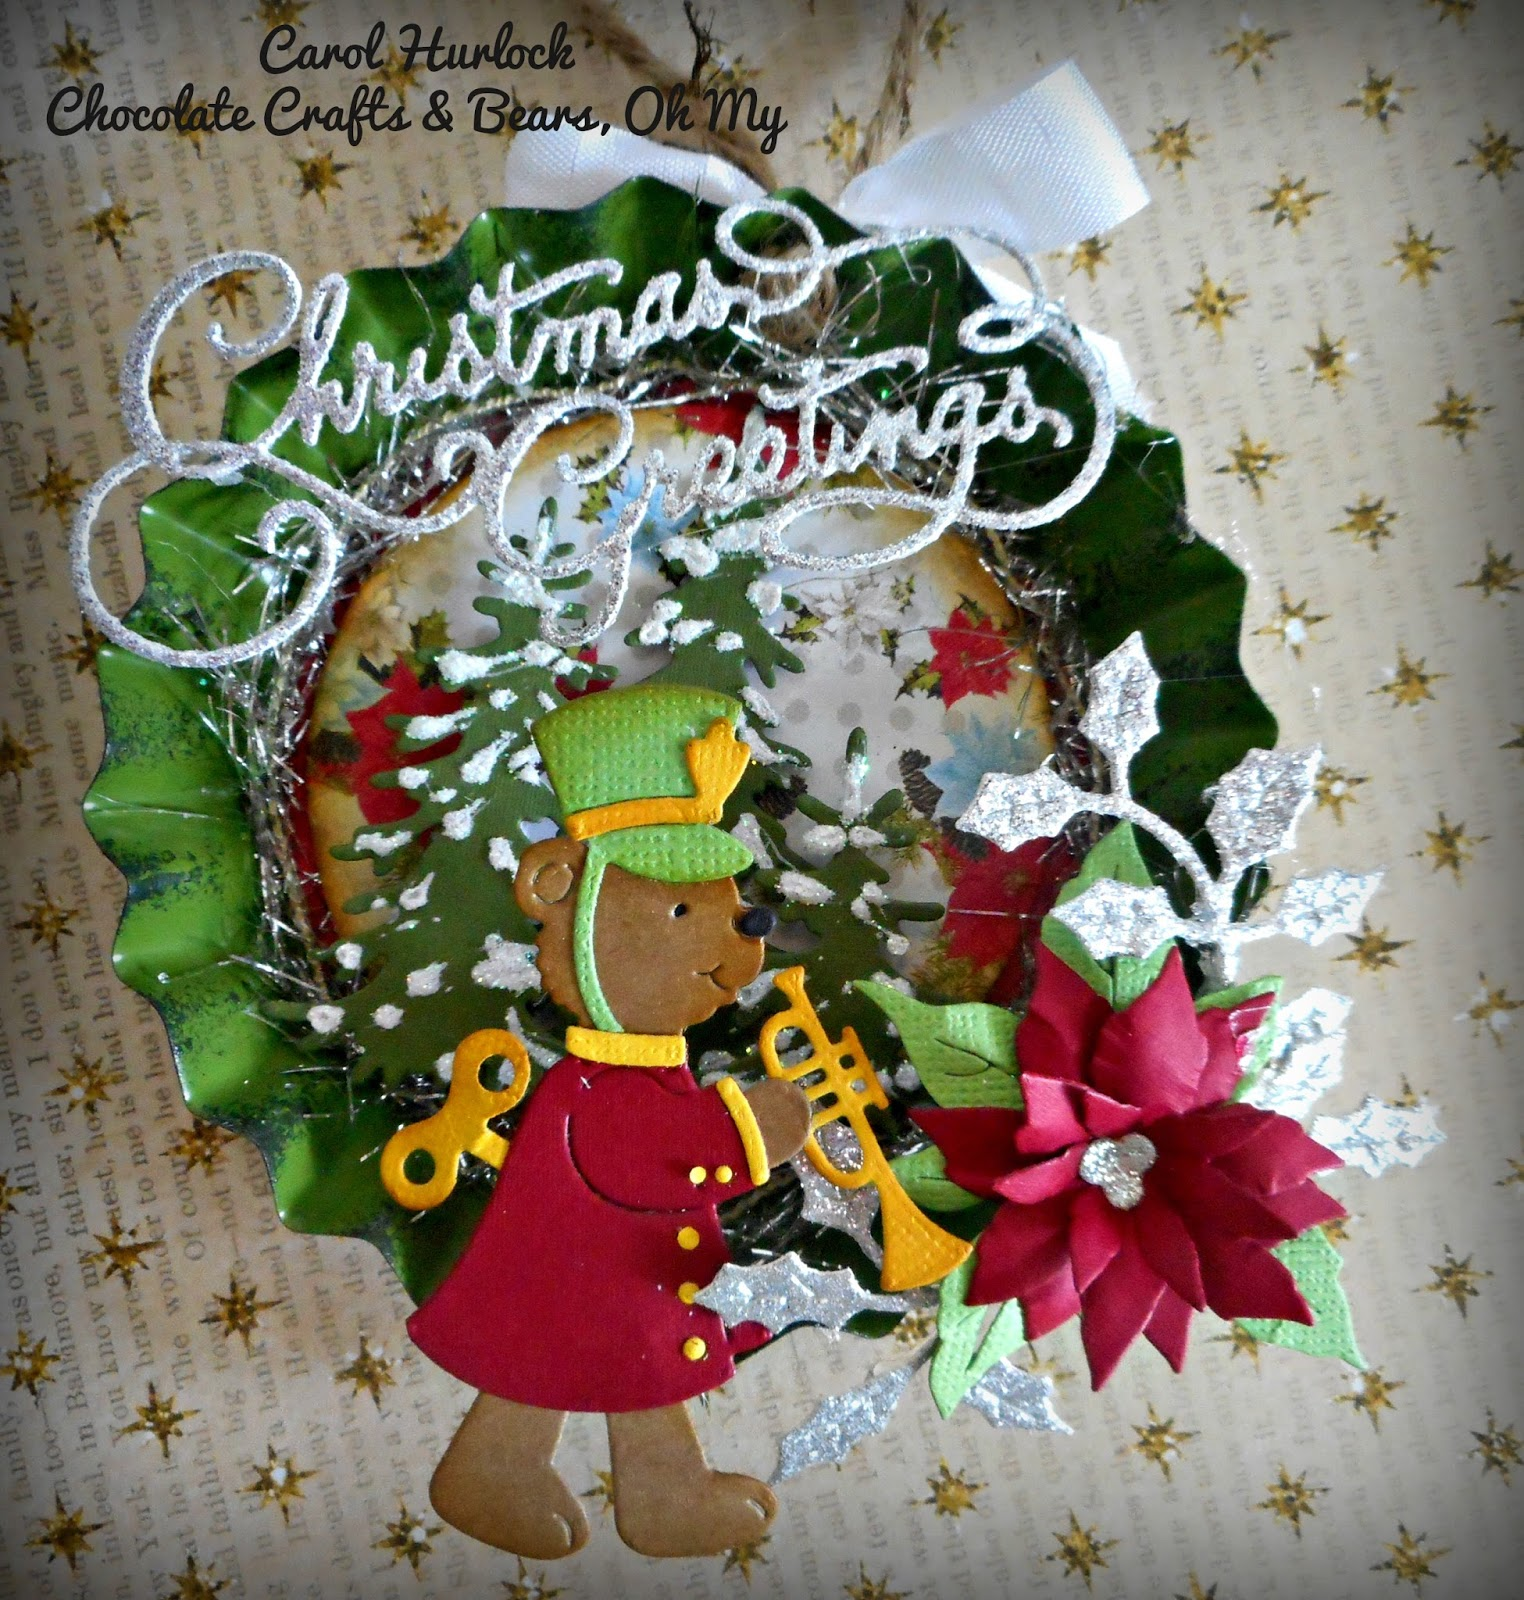 For The First Ornament We Have This Adorable Wind Up Teddy Bear From Cottagecutz I Just Love Bears And One Is Super Cute